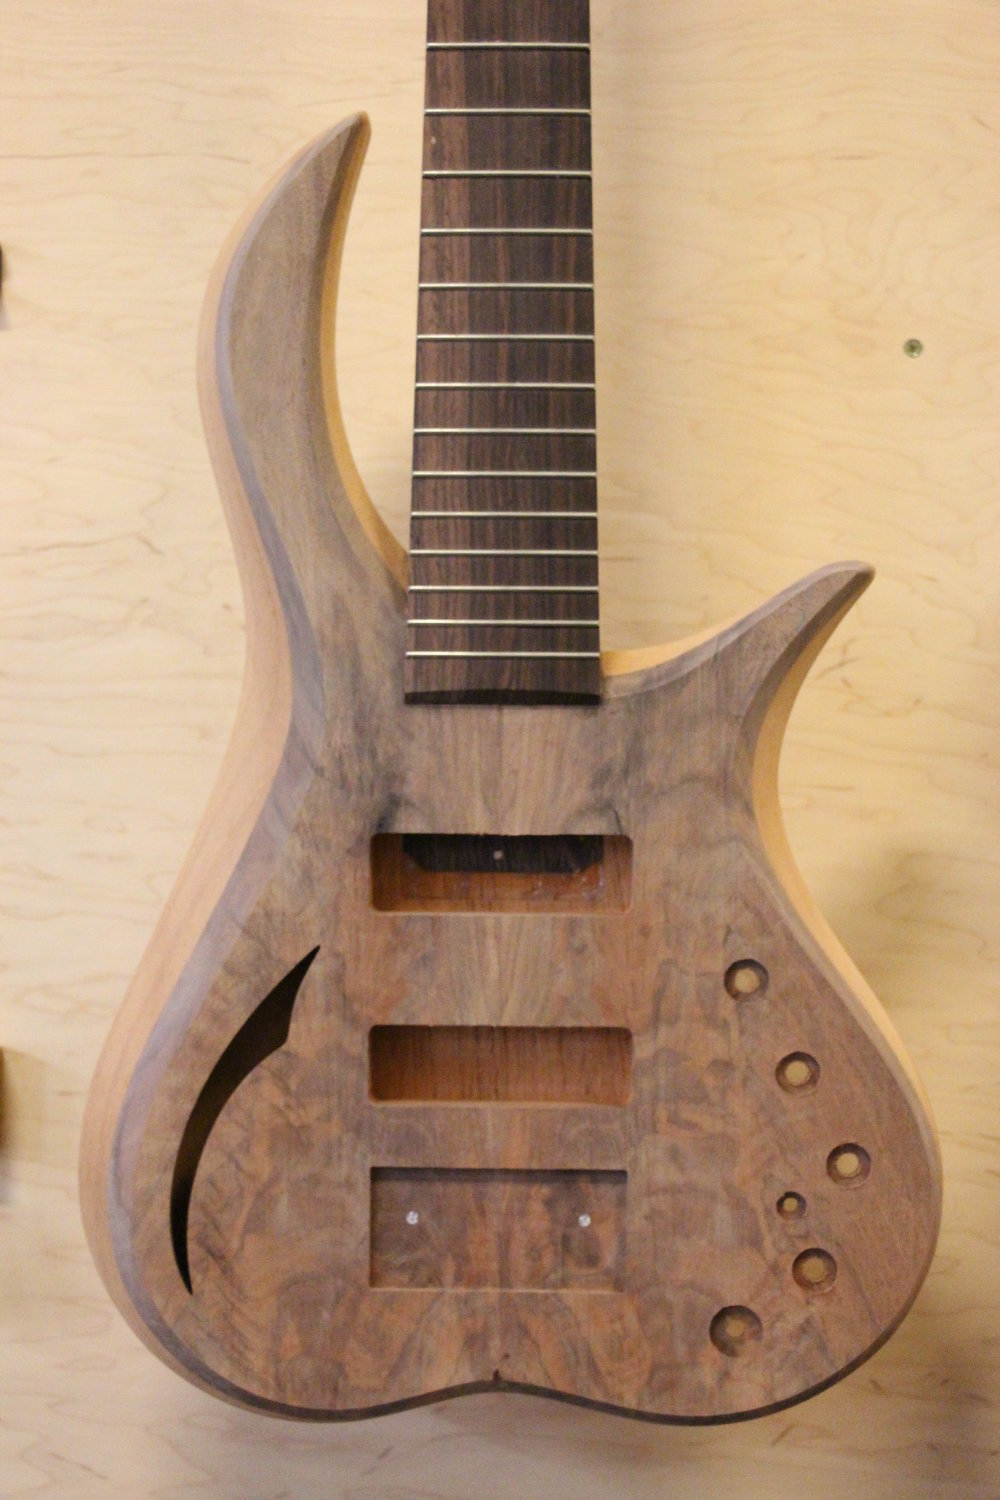 #034 Crotch walnut and Spanish cedar Caracal 5 with 3 piece wenge/ash neck and Indian rosewood fretboard